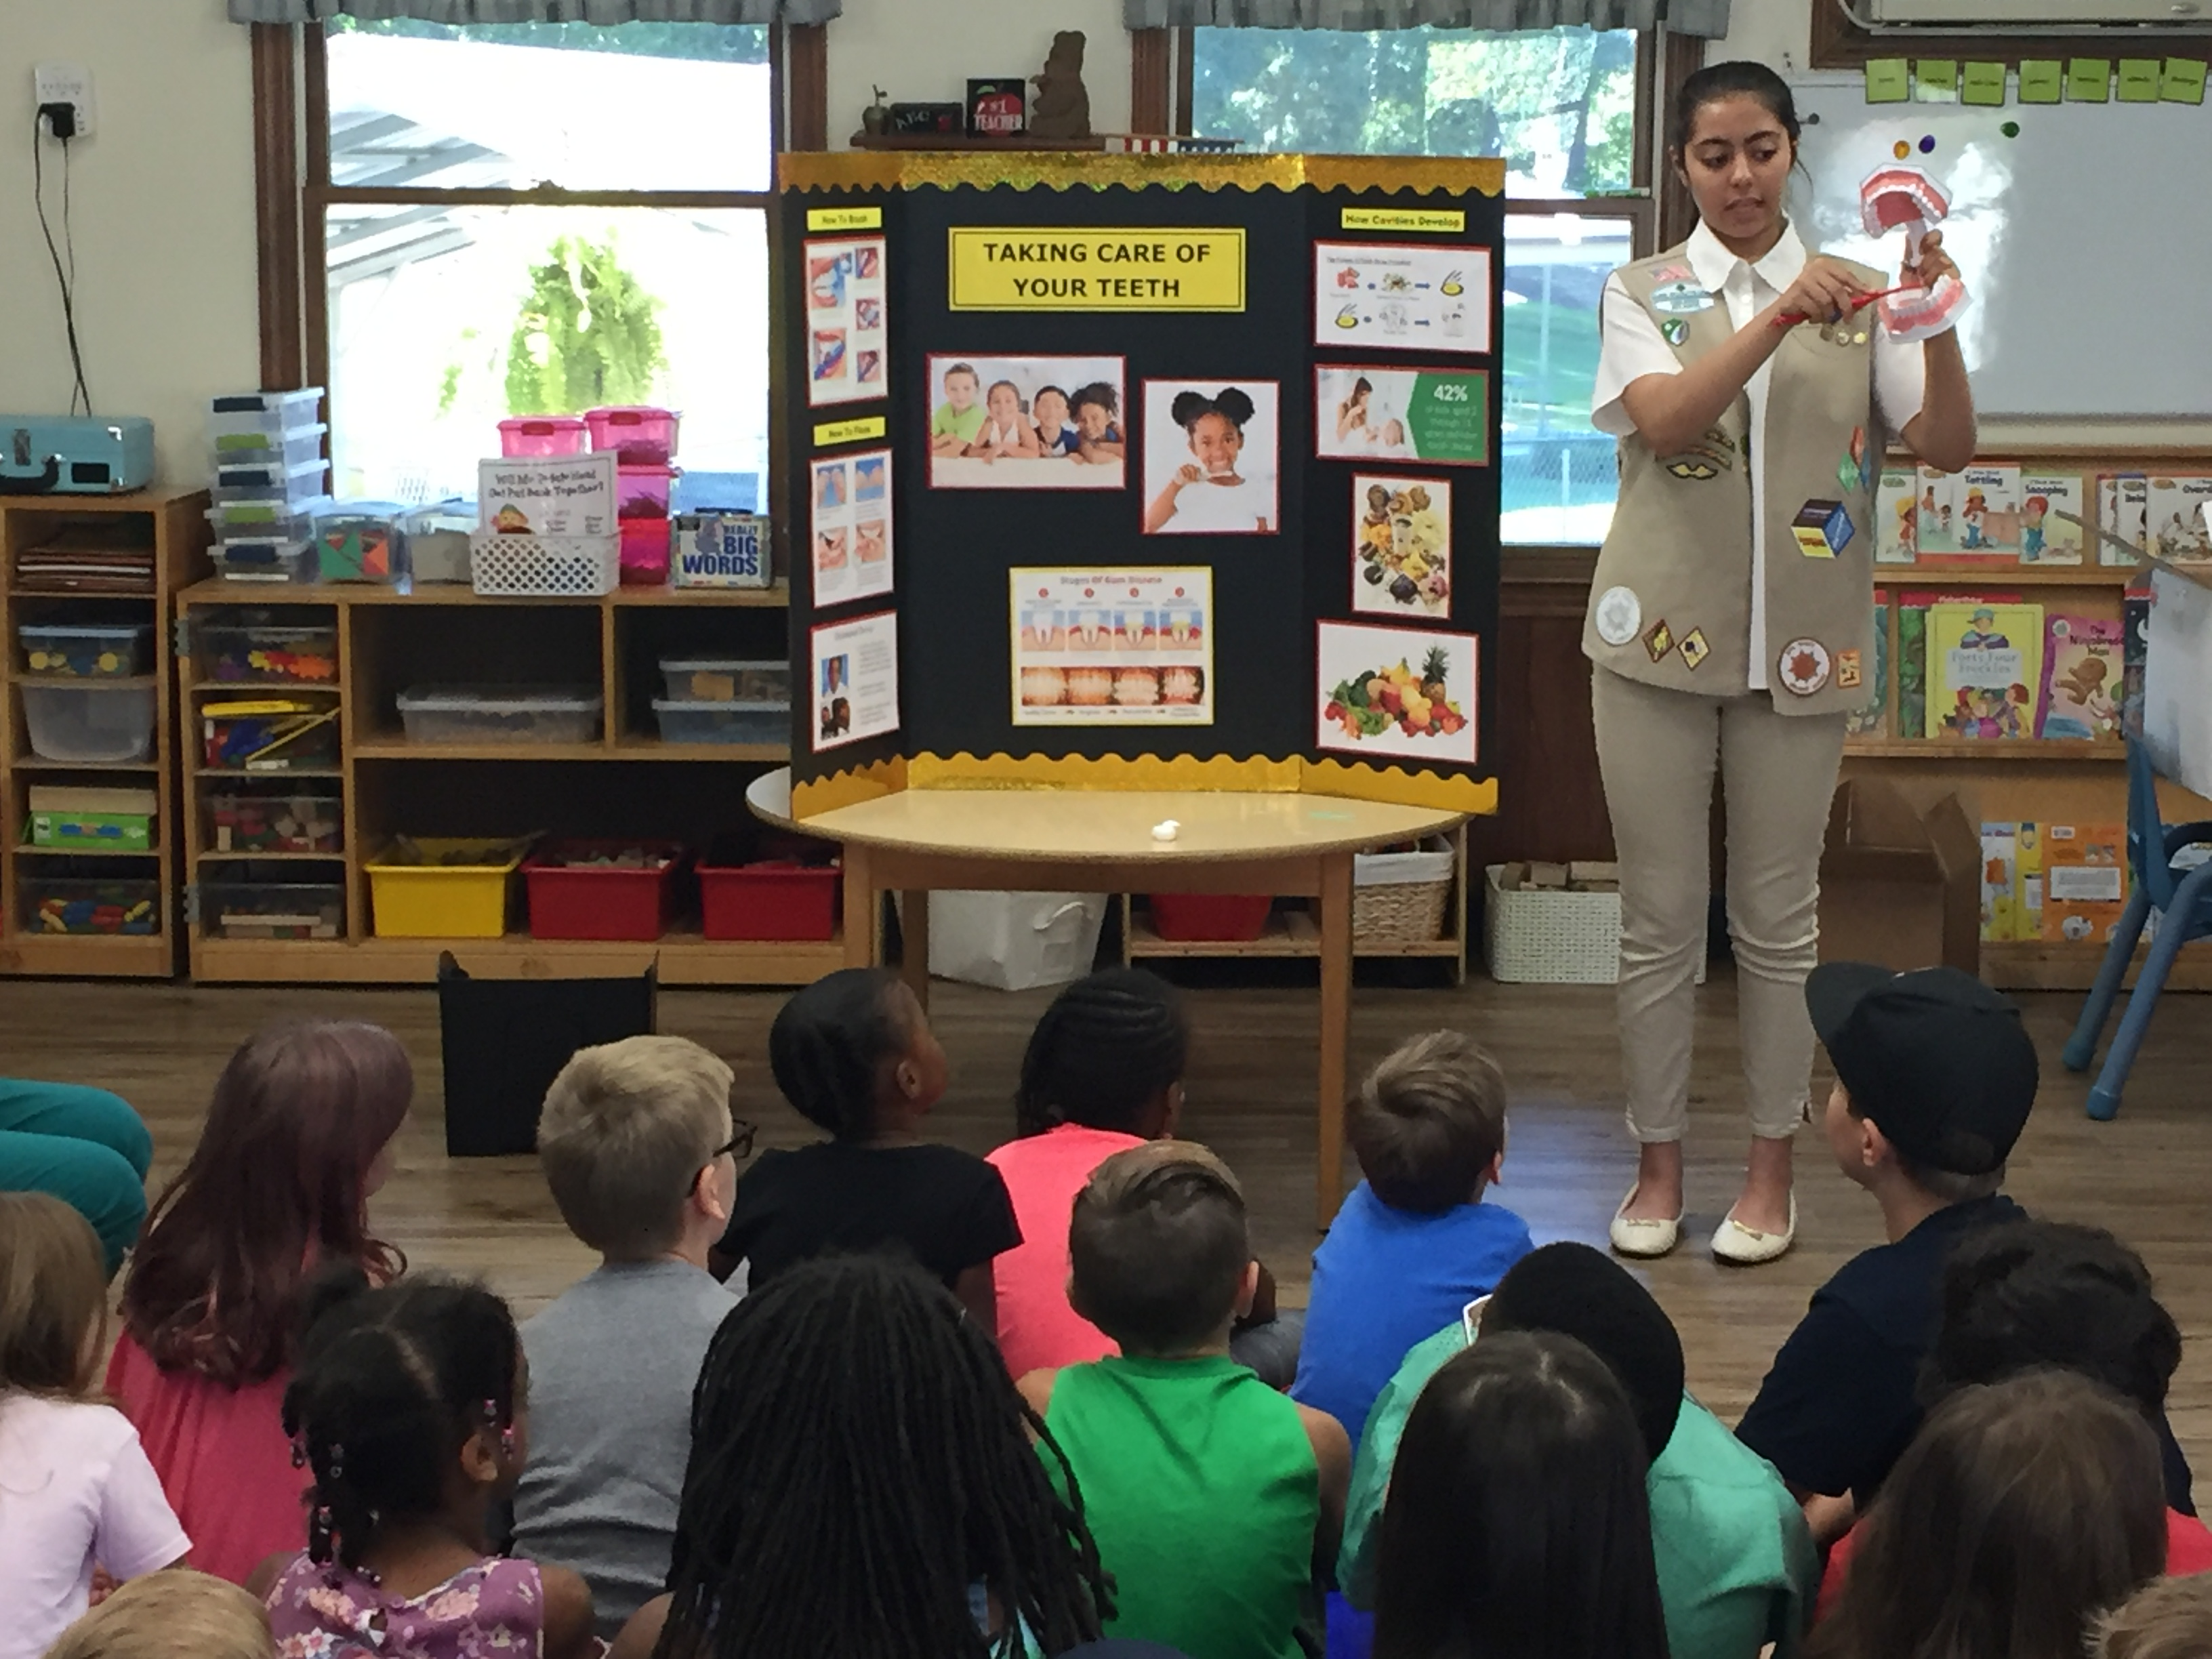 Kids learn about oral health